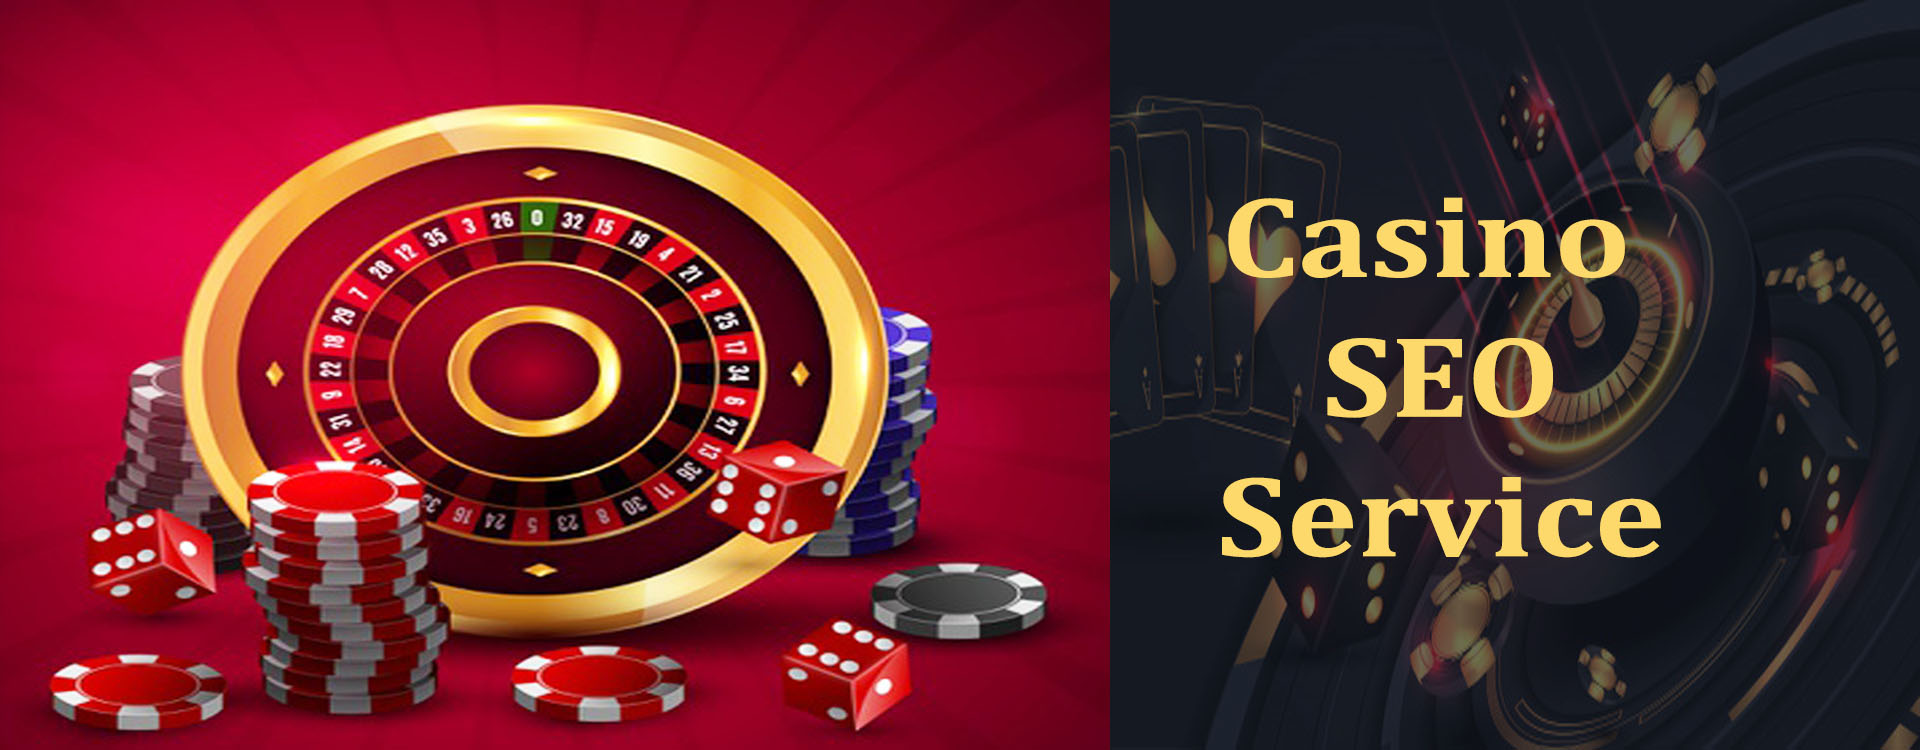 CASINO POKER GAMBLING WEBSITE Ranks On Google 1st Page MONTH Camping